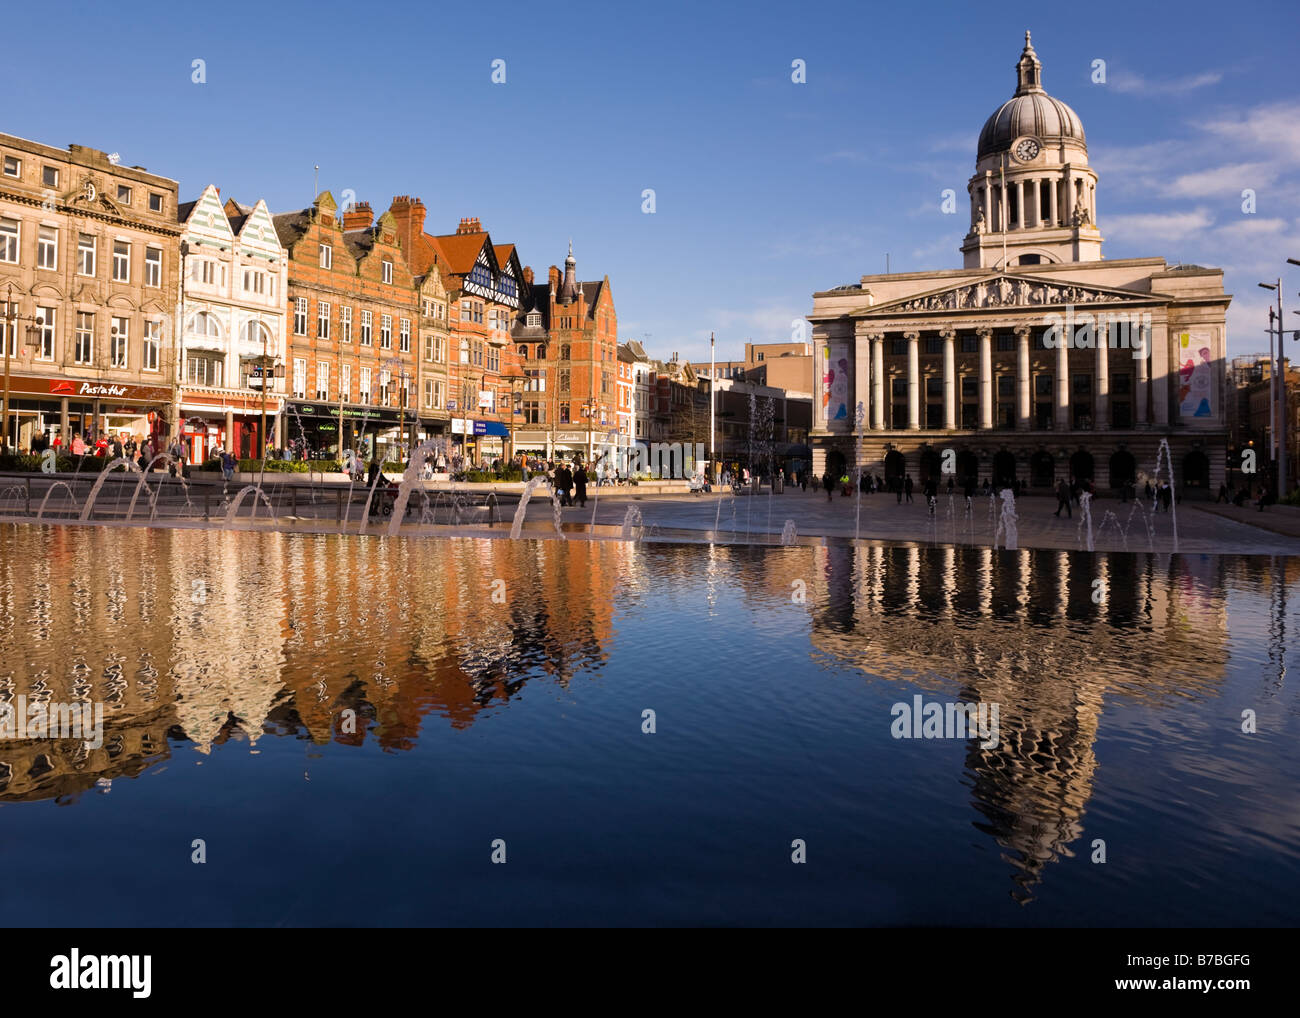 Nottingham City Hall and shops in the Market Place reflected in the waters of the fountain - Stock Image